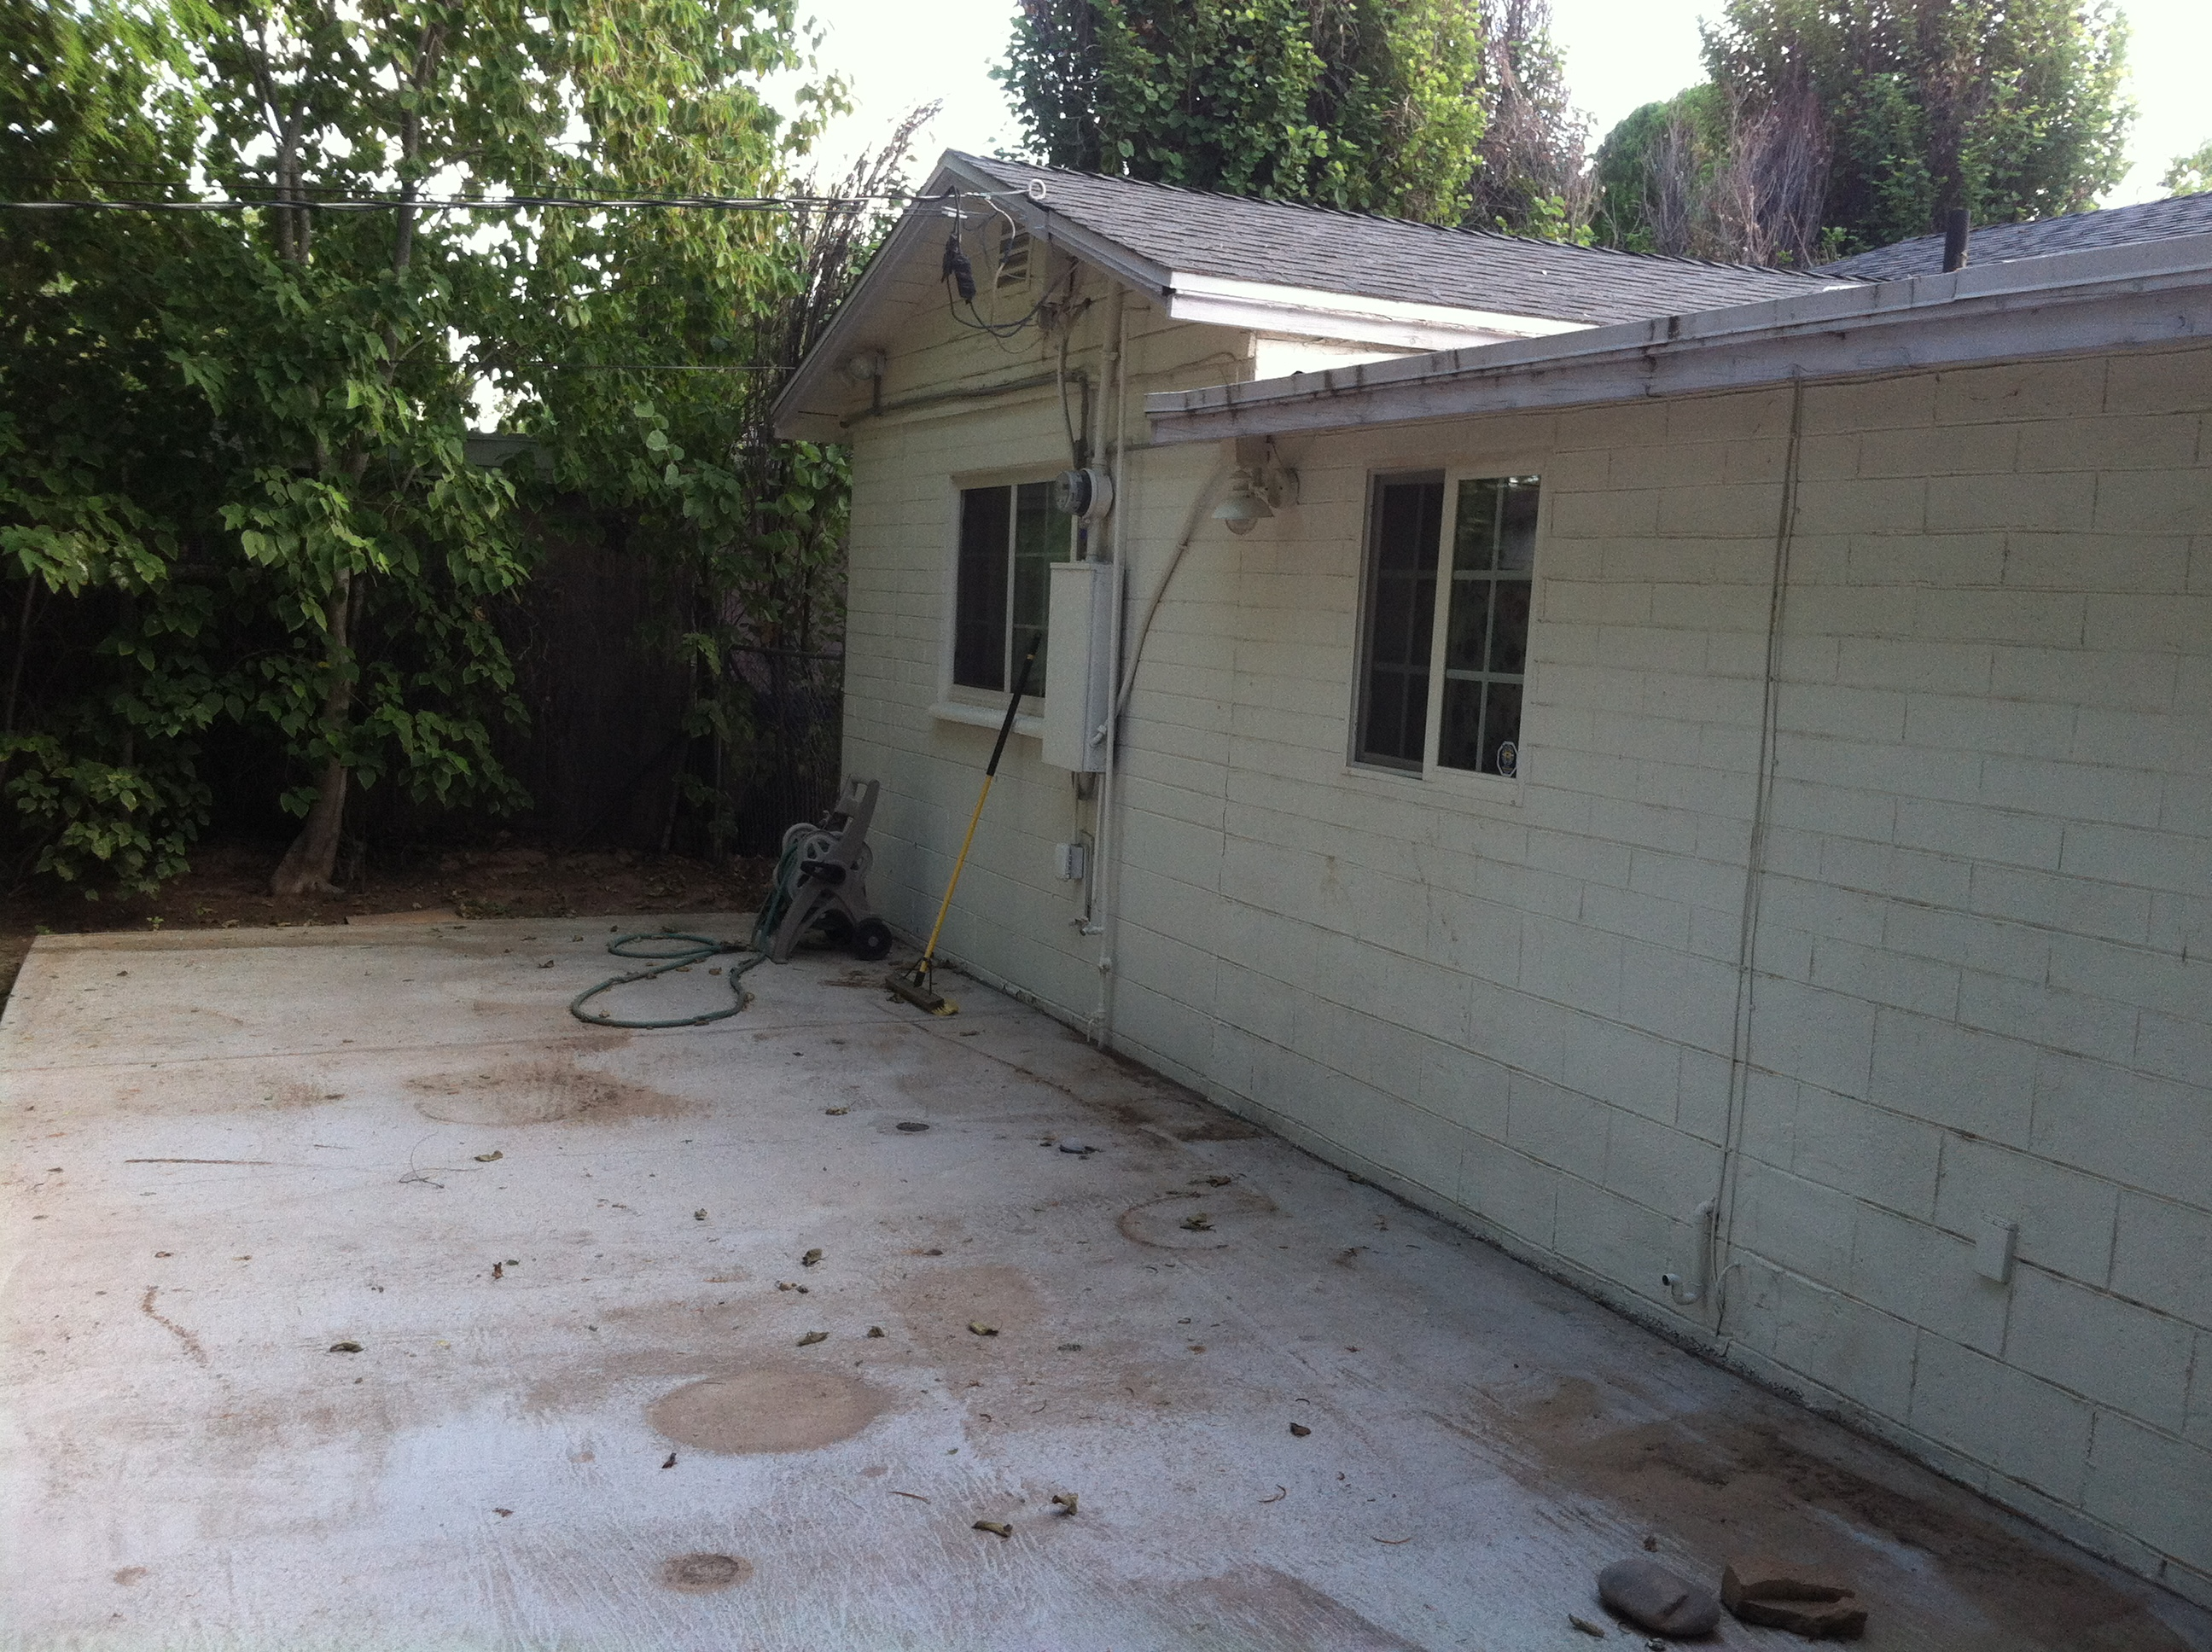 Power Washers Buying And Renting Vs Hiring Professionals